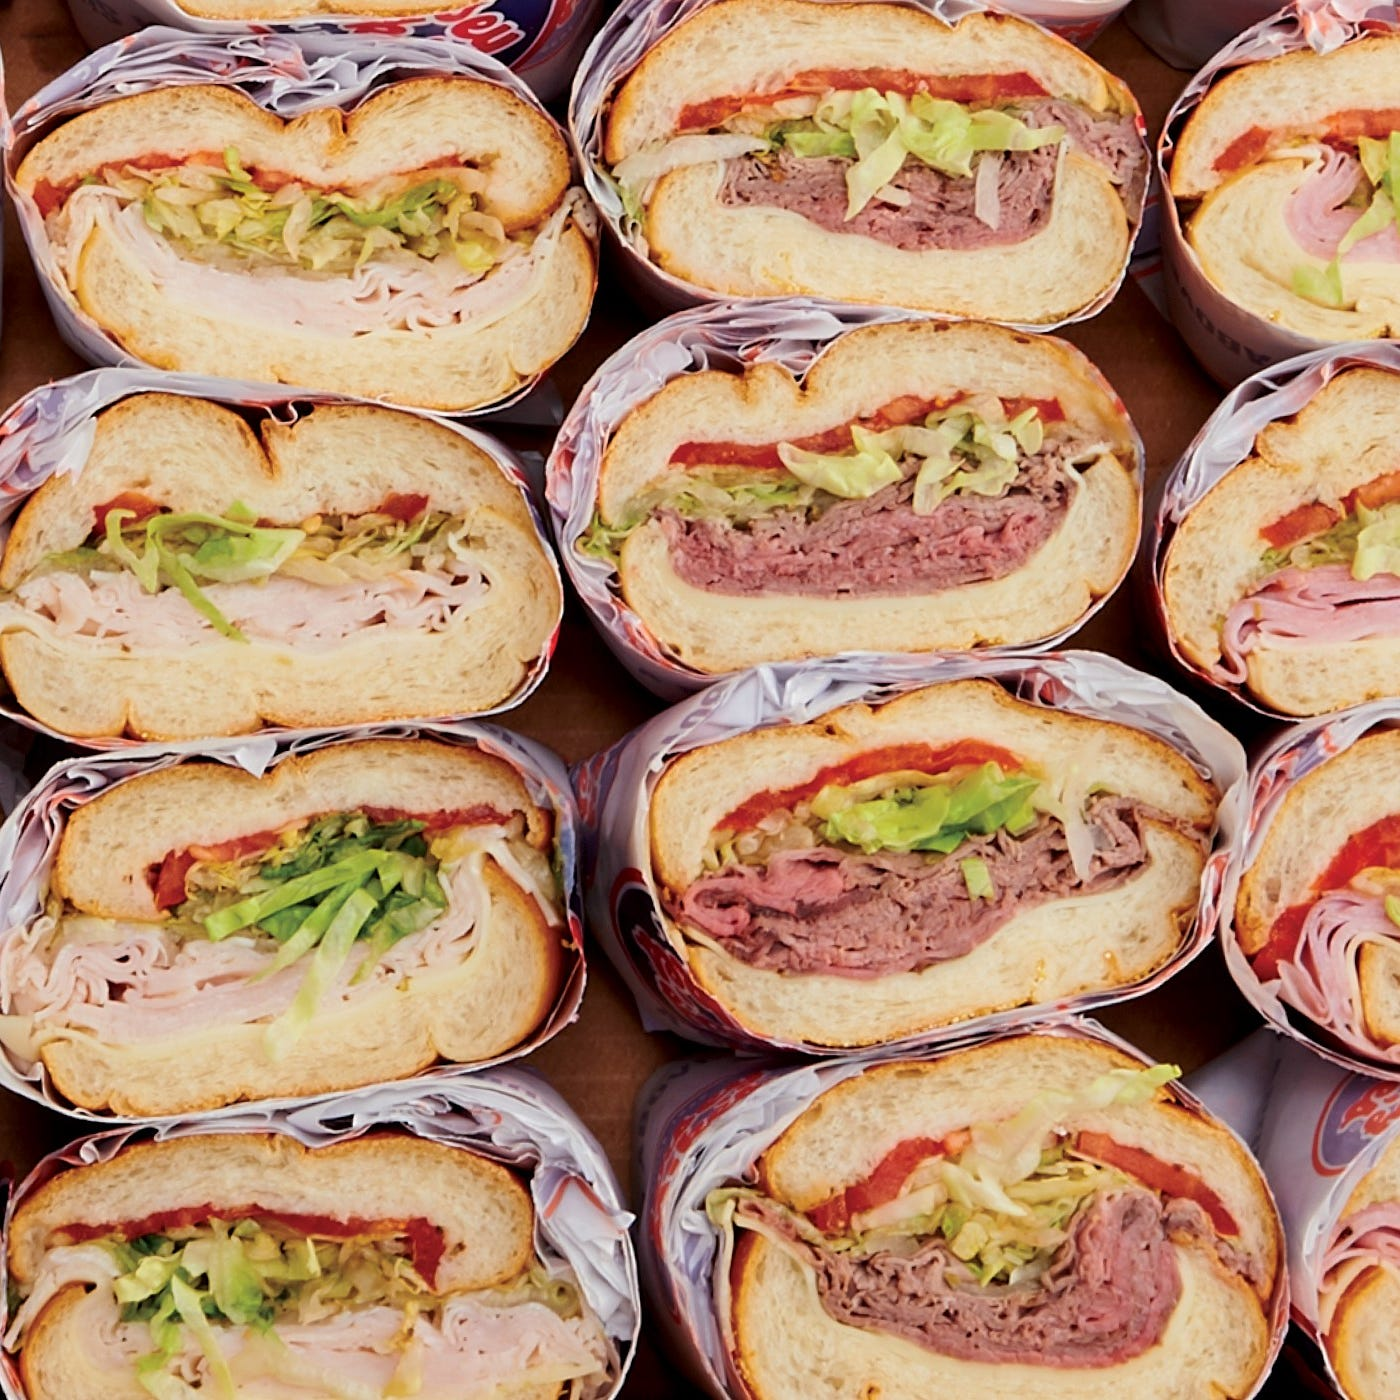 Upstate SC Jersey Mike's Sub shops donating all money made today to Safe Harbor